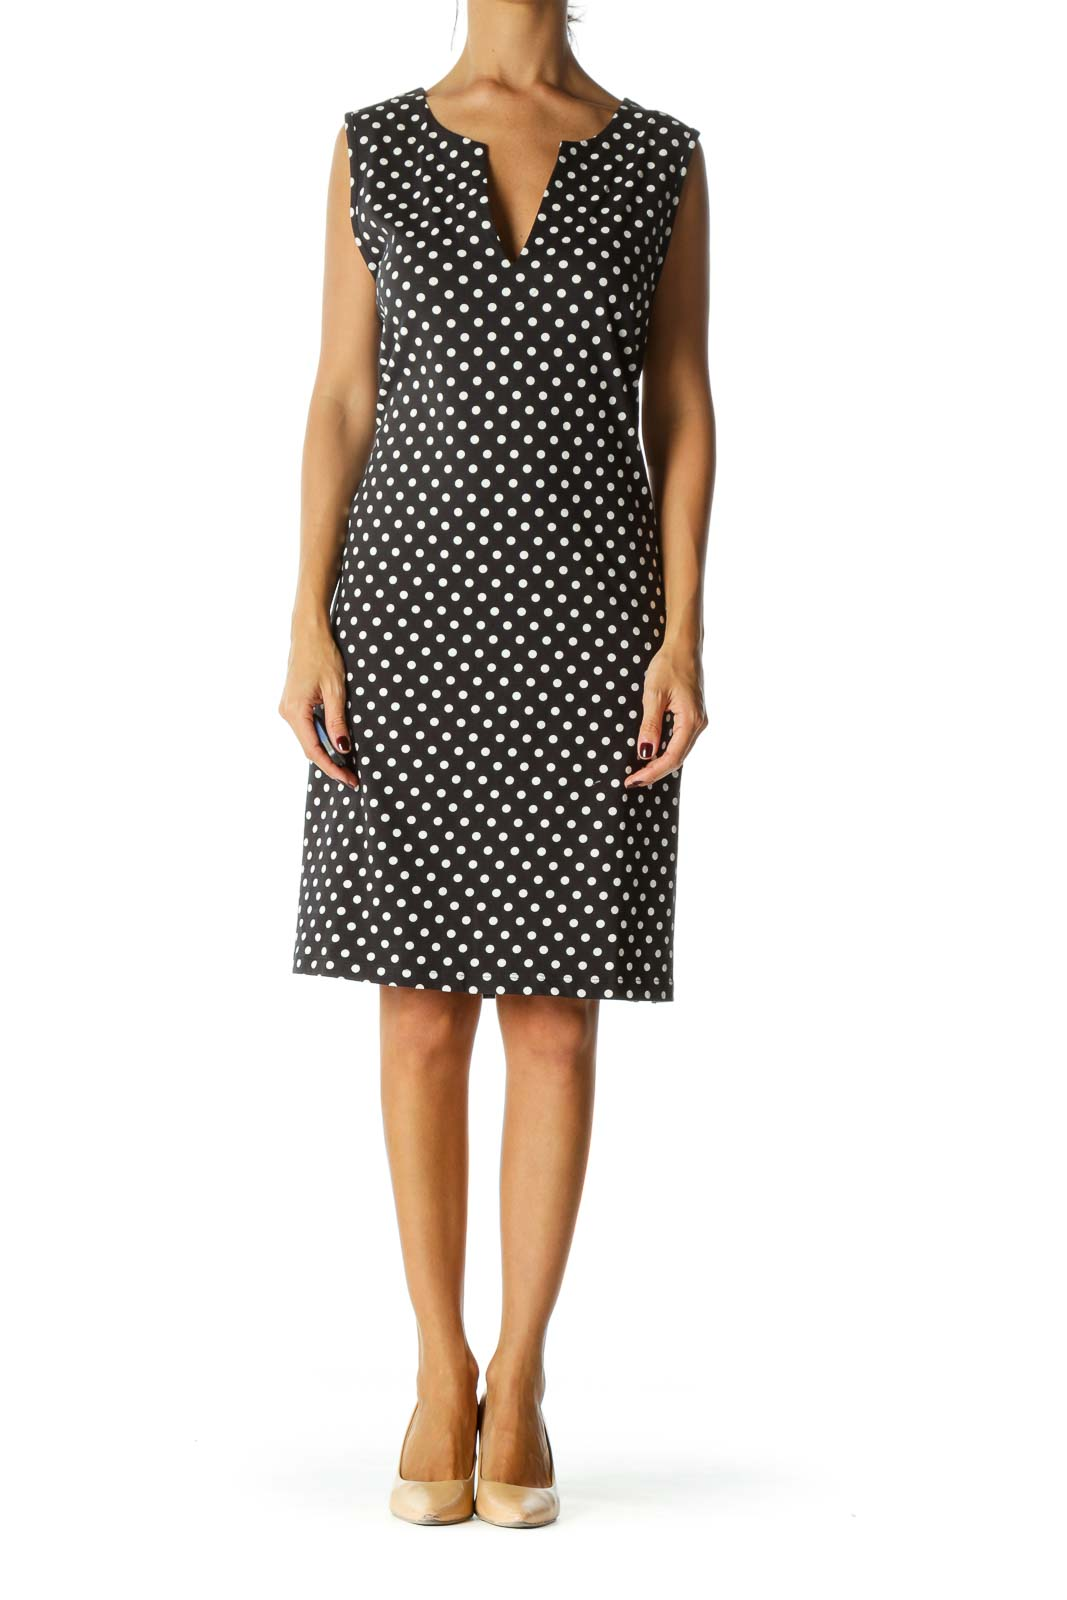 Black White Cotton Polka Dot Slip Dress